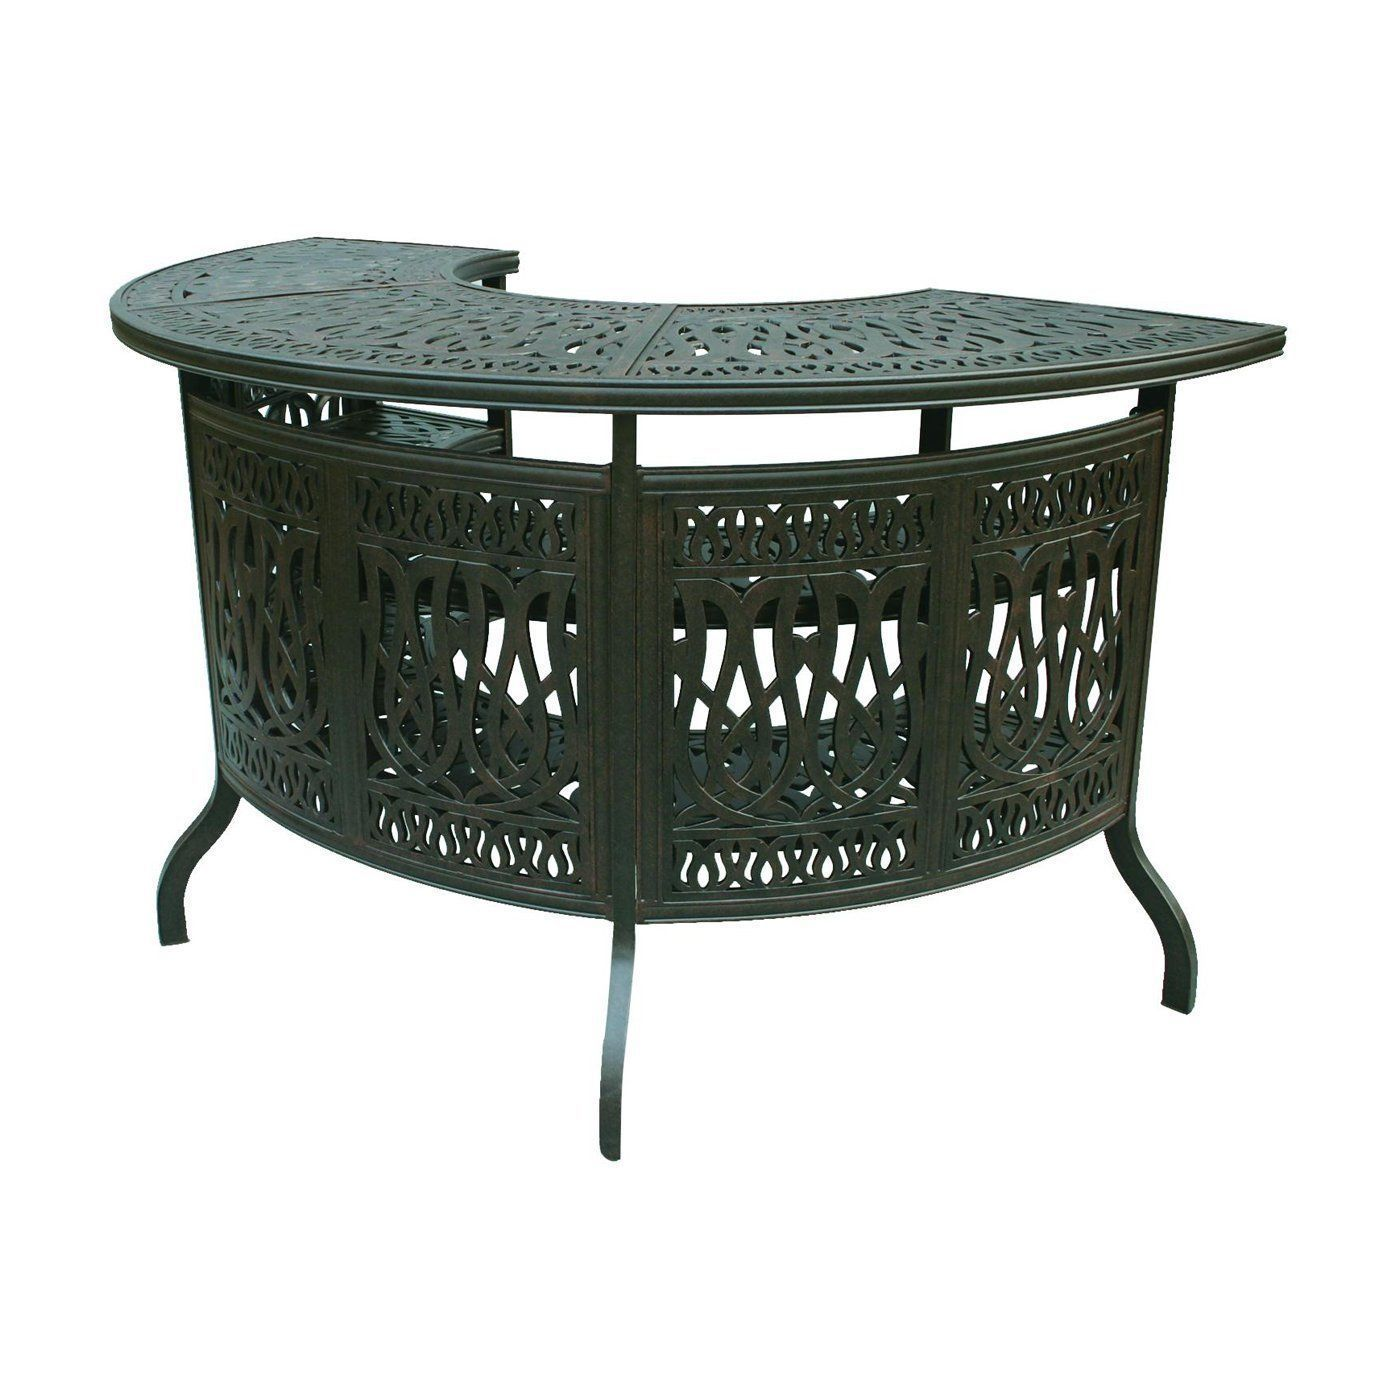 Patio Bar Elisabeth solid cast aluminum all weather Table furniture Bronze